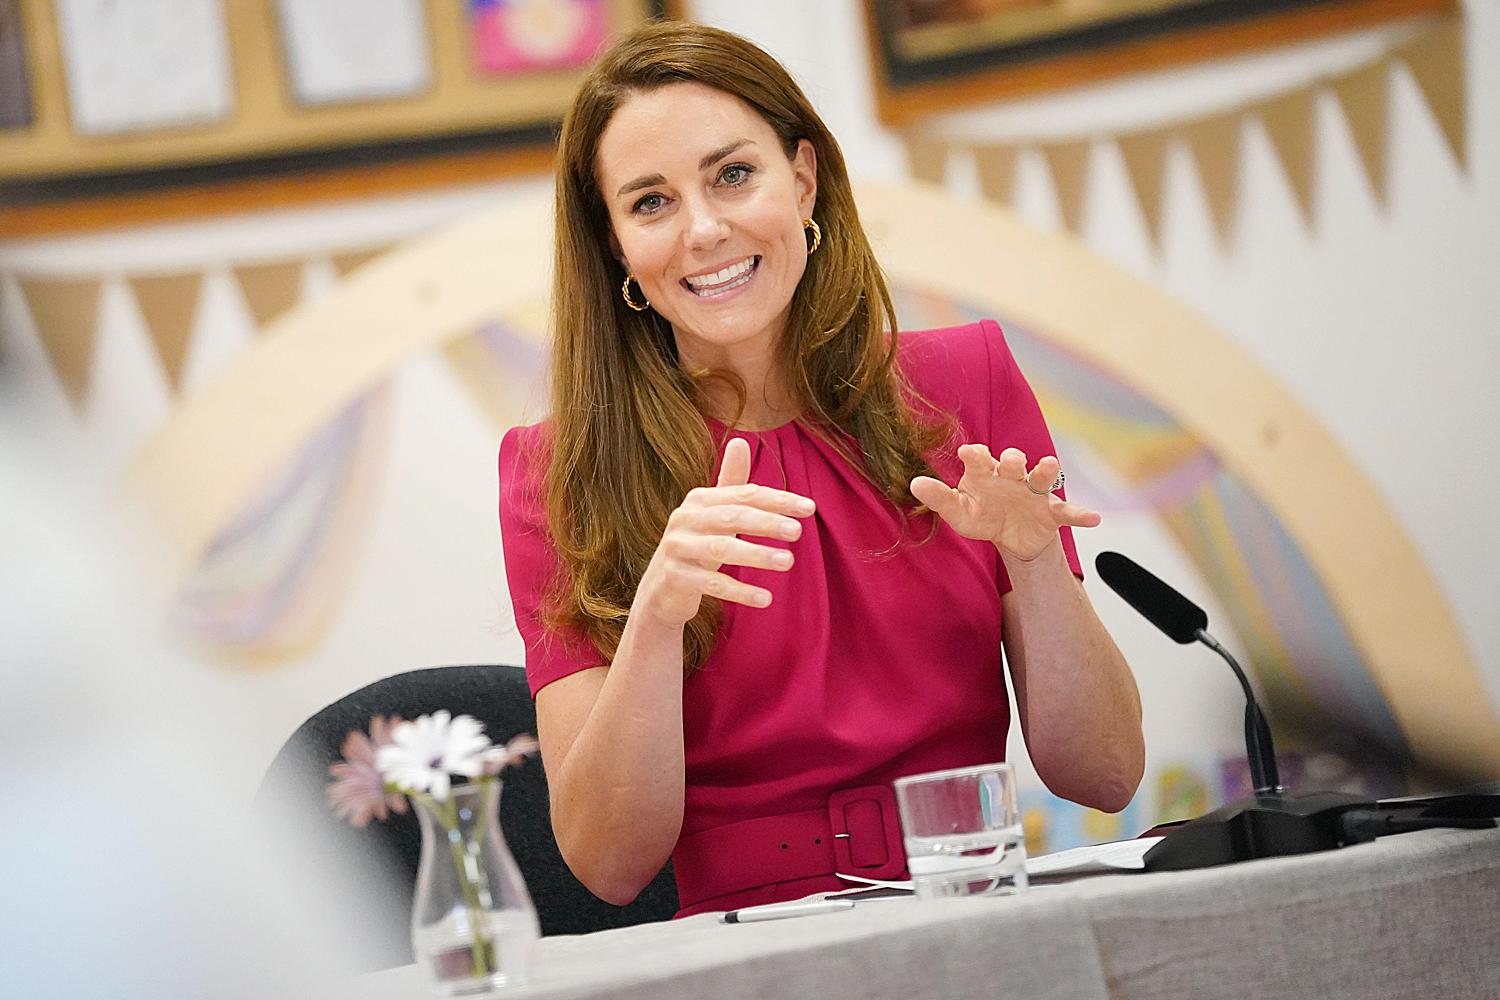 The Duchess of Cambridge participating in a roundtable discussion